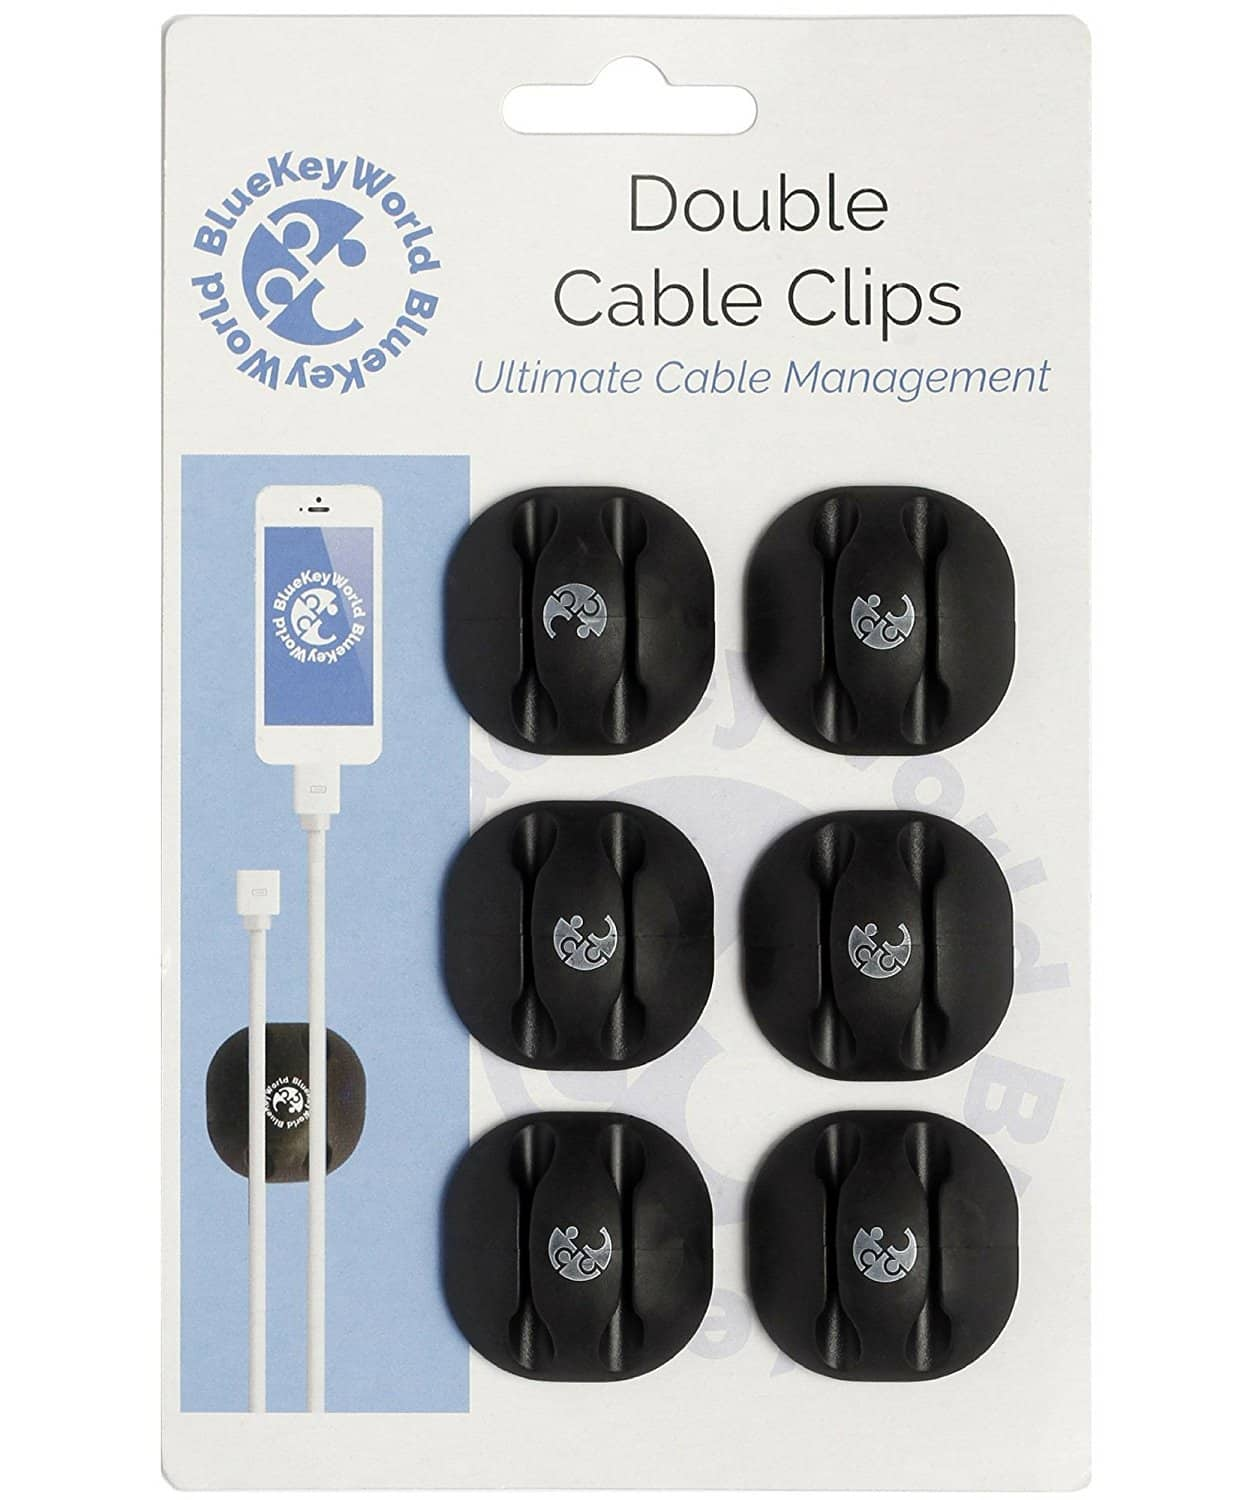 Cable Clips, Cord Holders - Clutter Free Desk in Minutes, No More Searching for Wires on the Floor - Cord Management and Organizer, $7.11